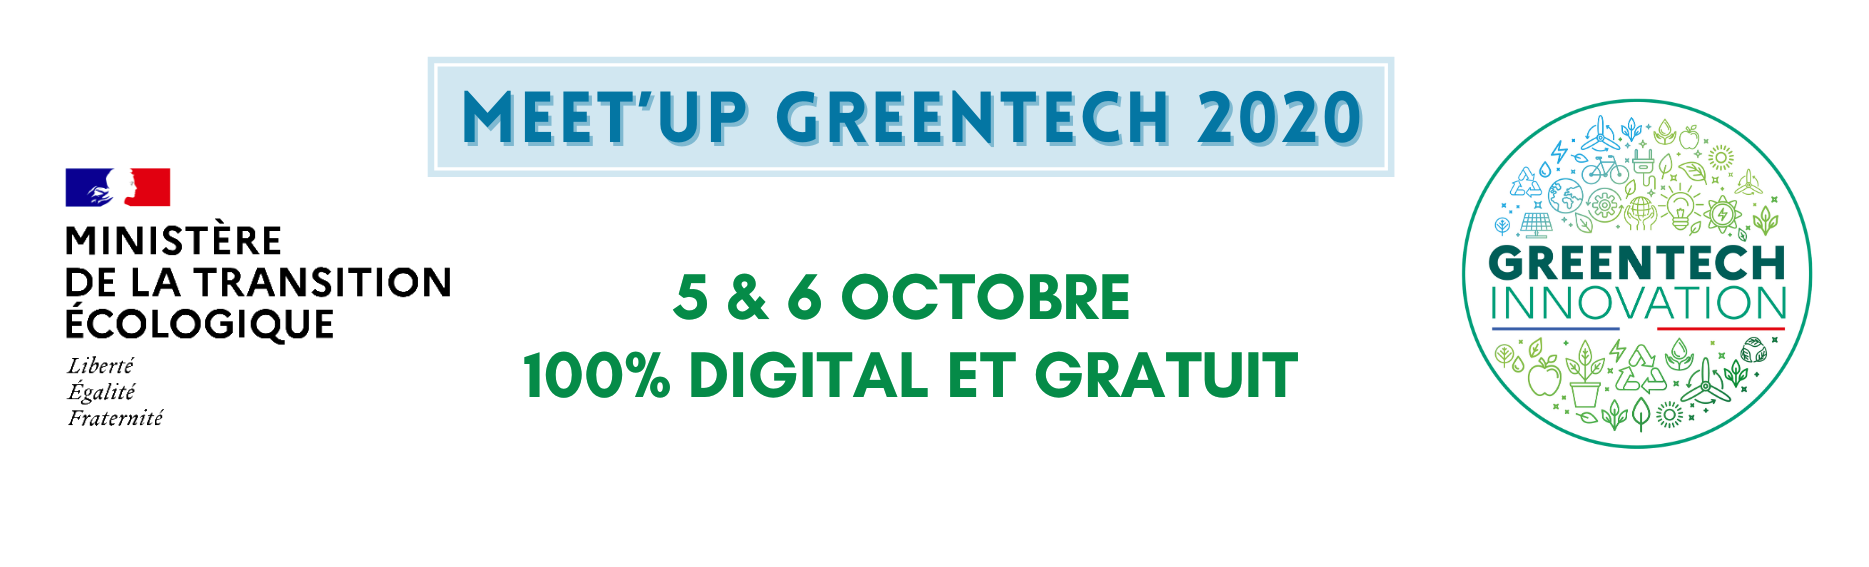 Meet'Up greentech 2020